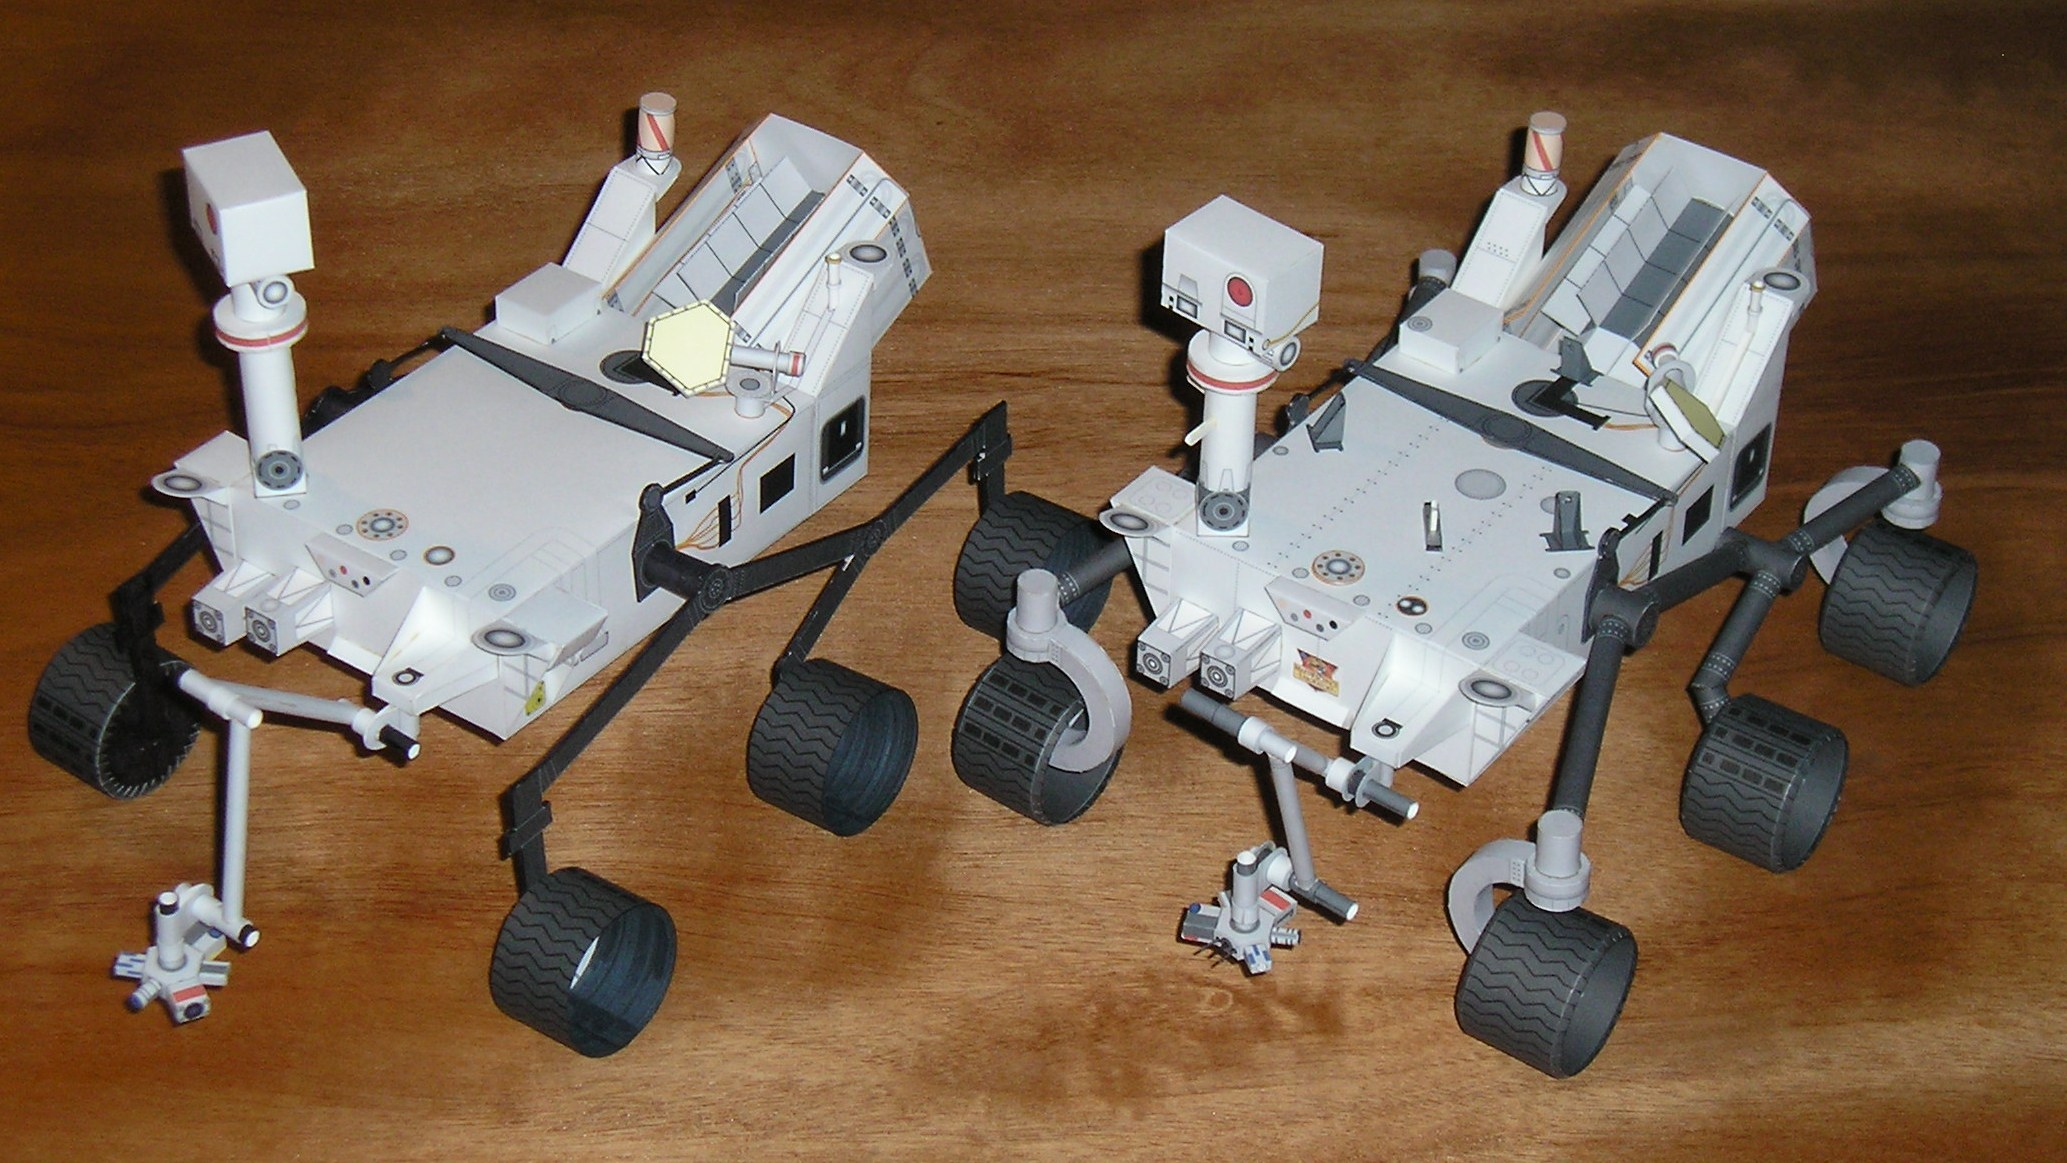 Mars Rover Cut Out Papercraft - Pics about space